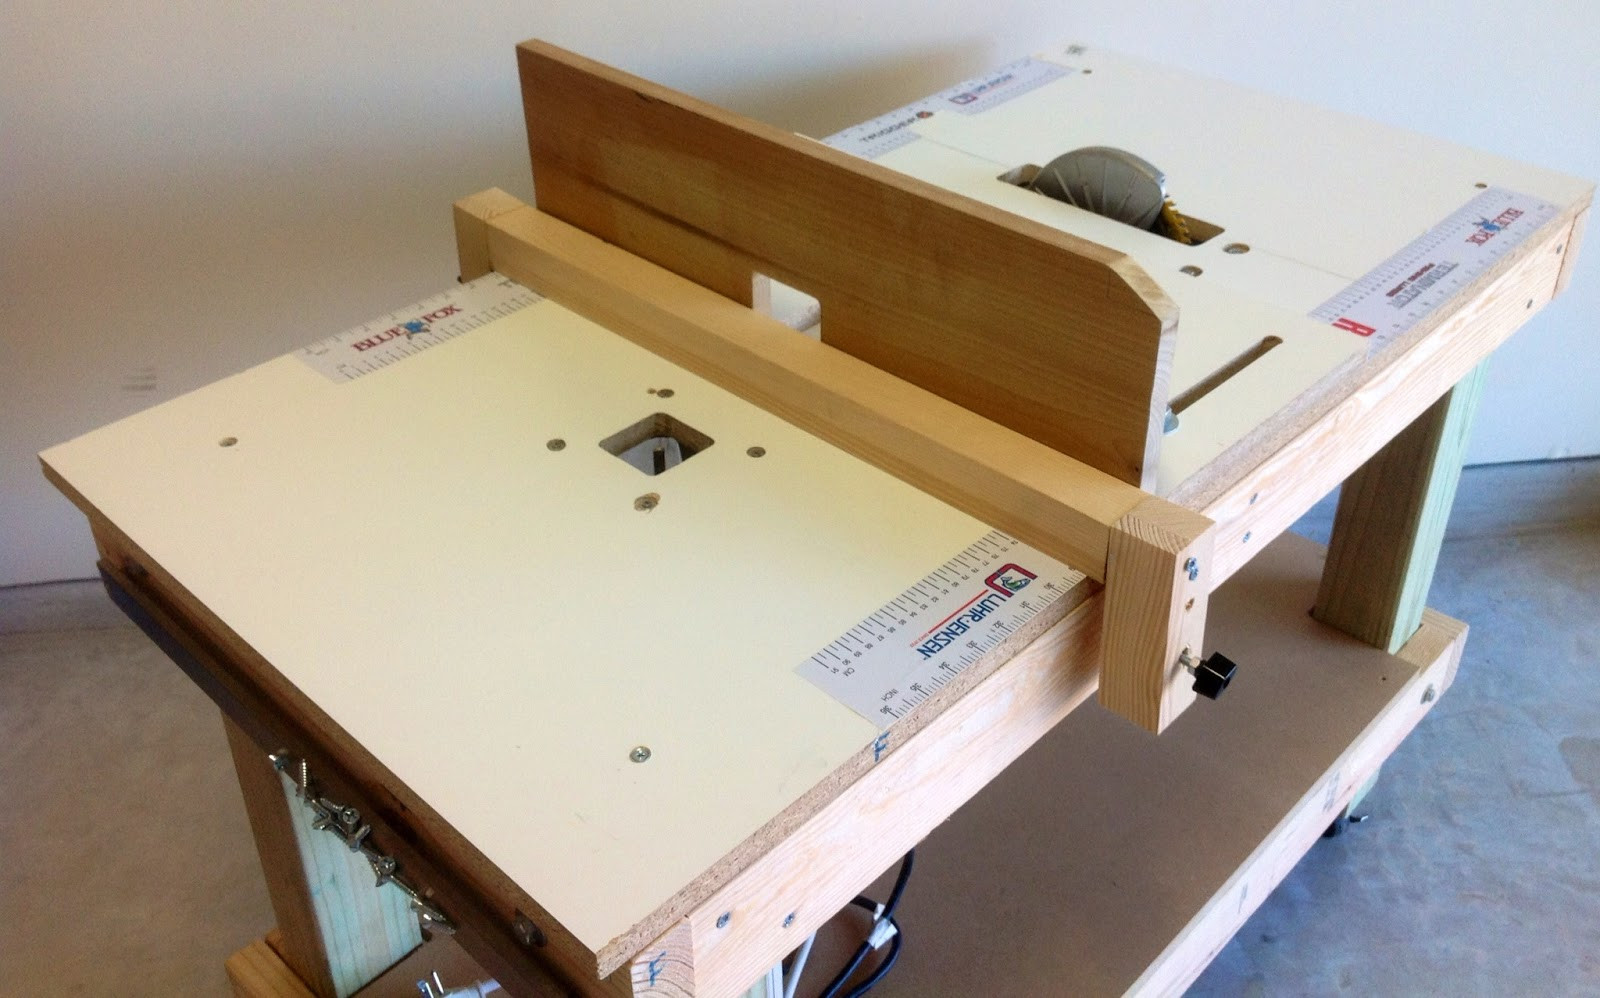 Best ideas about Best DIY Table Saw . Save or Pin Thinking Wood Project 2 DIY Portable 3 in 1 Workbench Now.